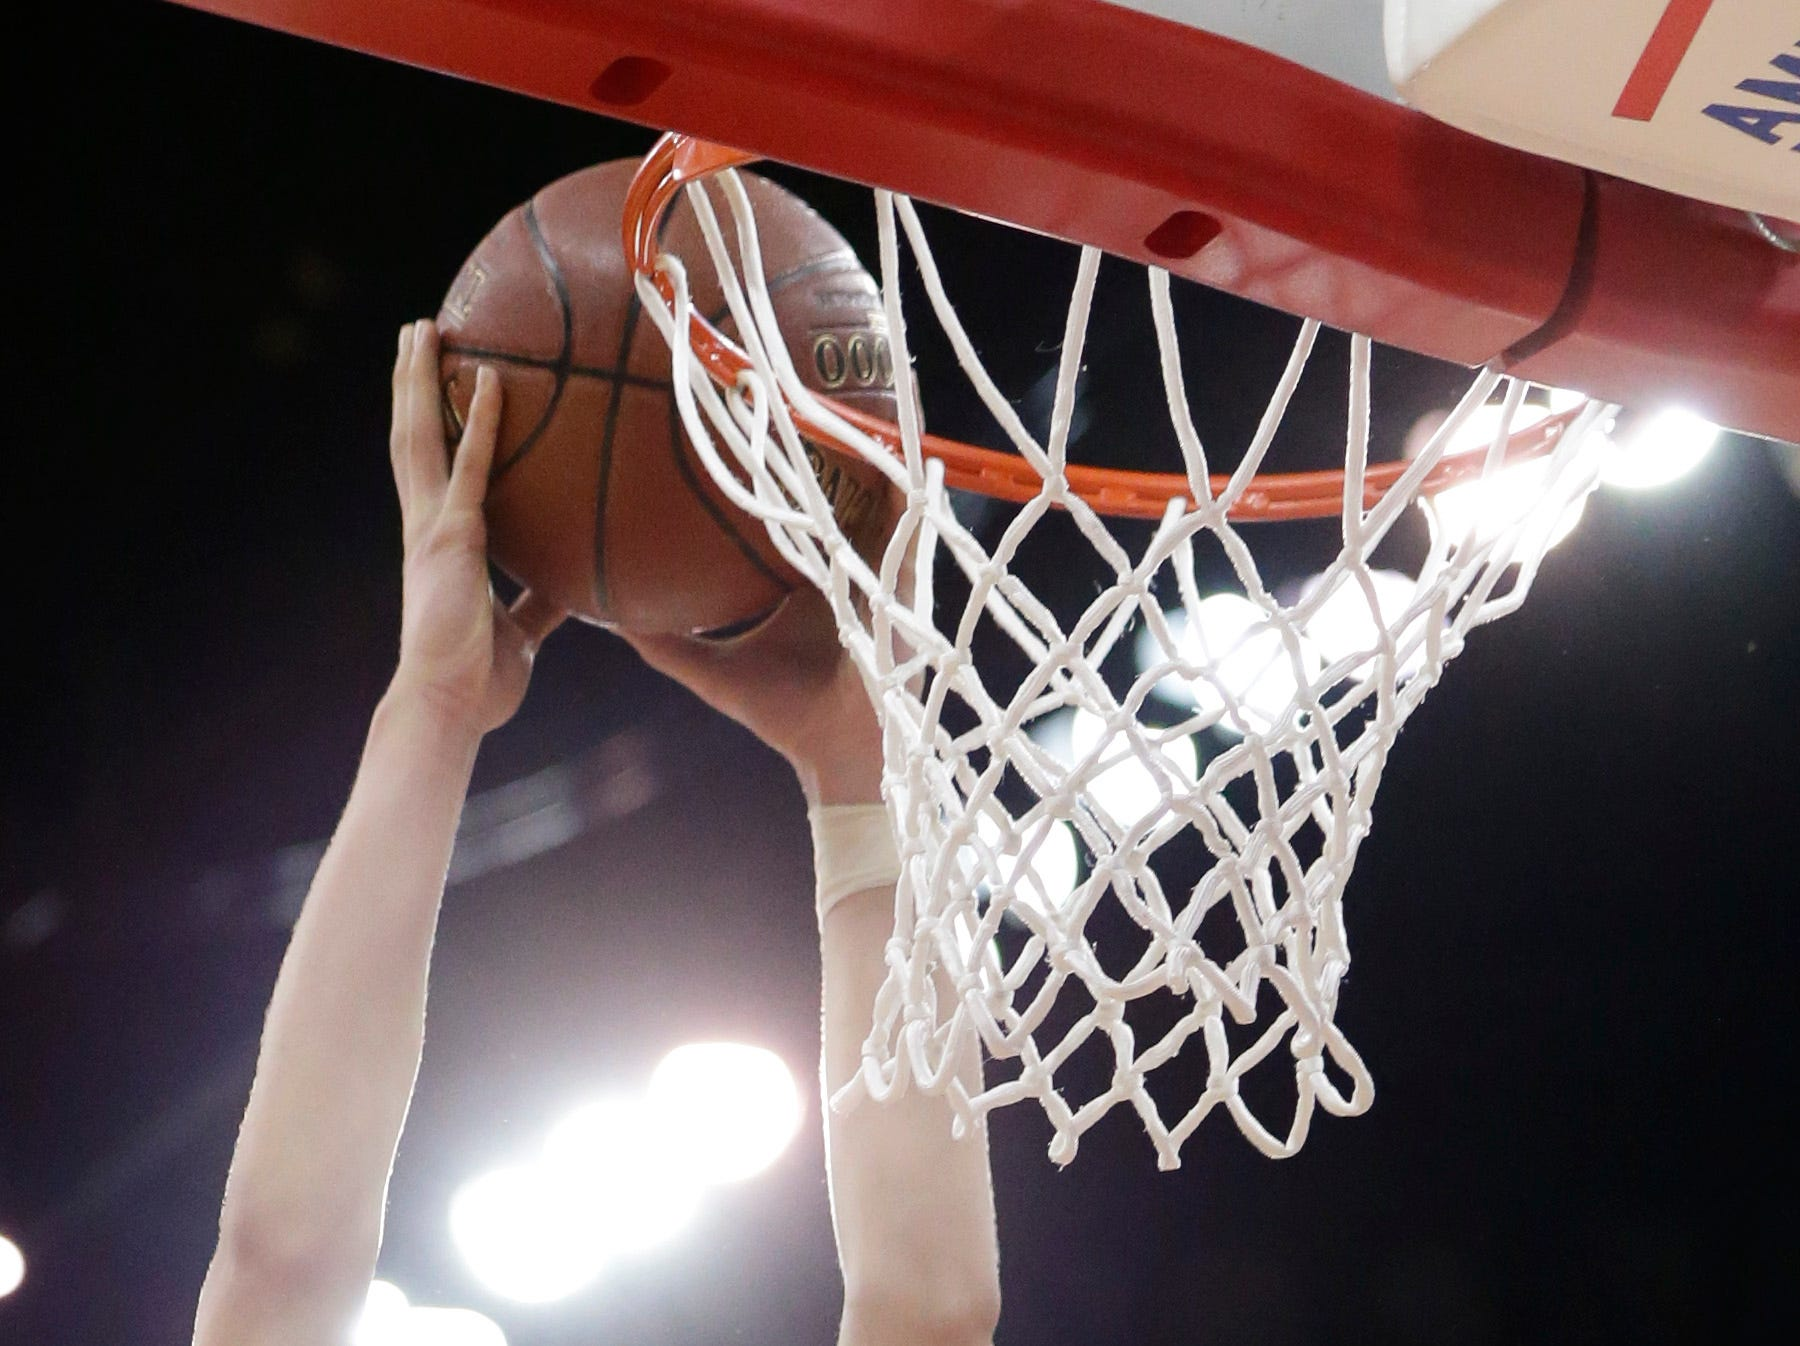 Brown Deer's Taurus Adams II dunks the ball during the second half of their division 3 semifinal game at the WIAA State Boys Basketball Tournament Friday, March 20, 2015 at the Kohl Center in Madison, Wis. Brown Deer beat Prescott 62-50.  MARK HOFFMAN/MHOFFMAN@JOURNALSENTINEL.COM